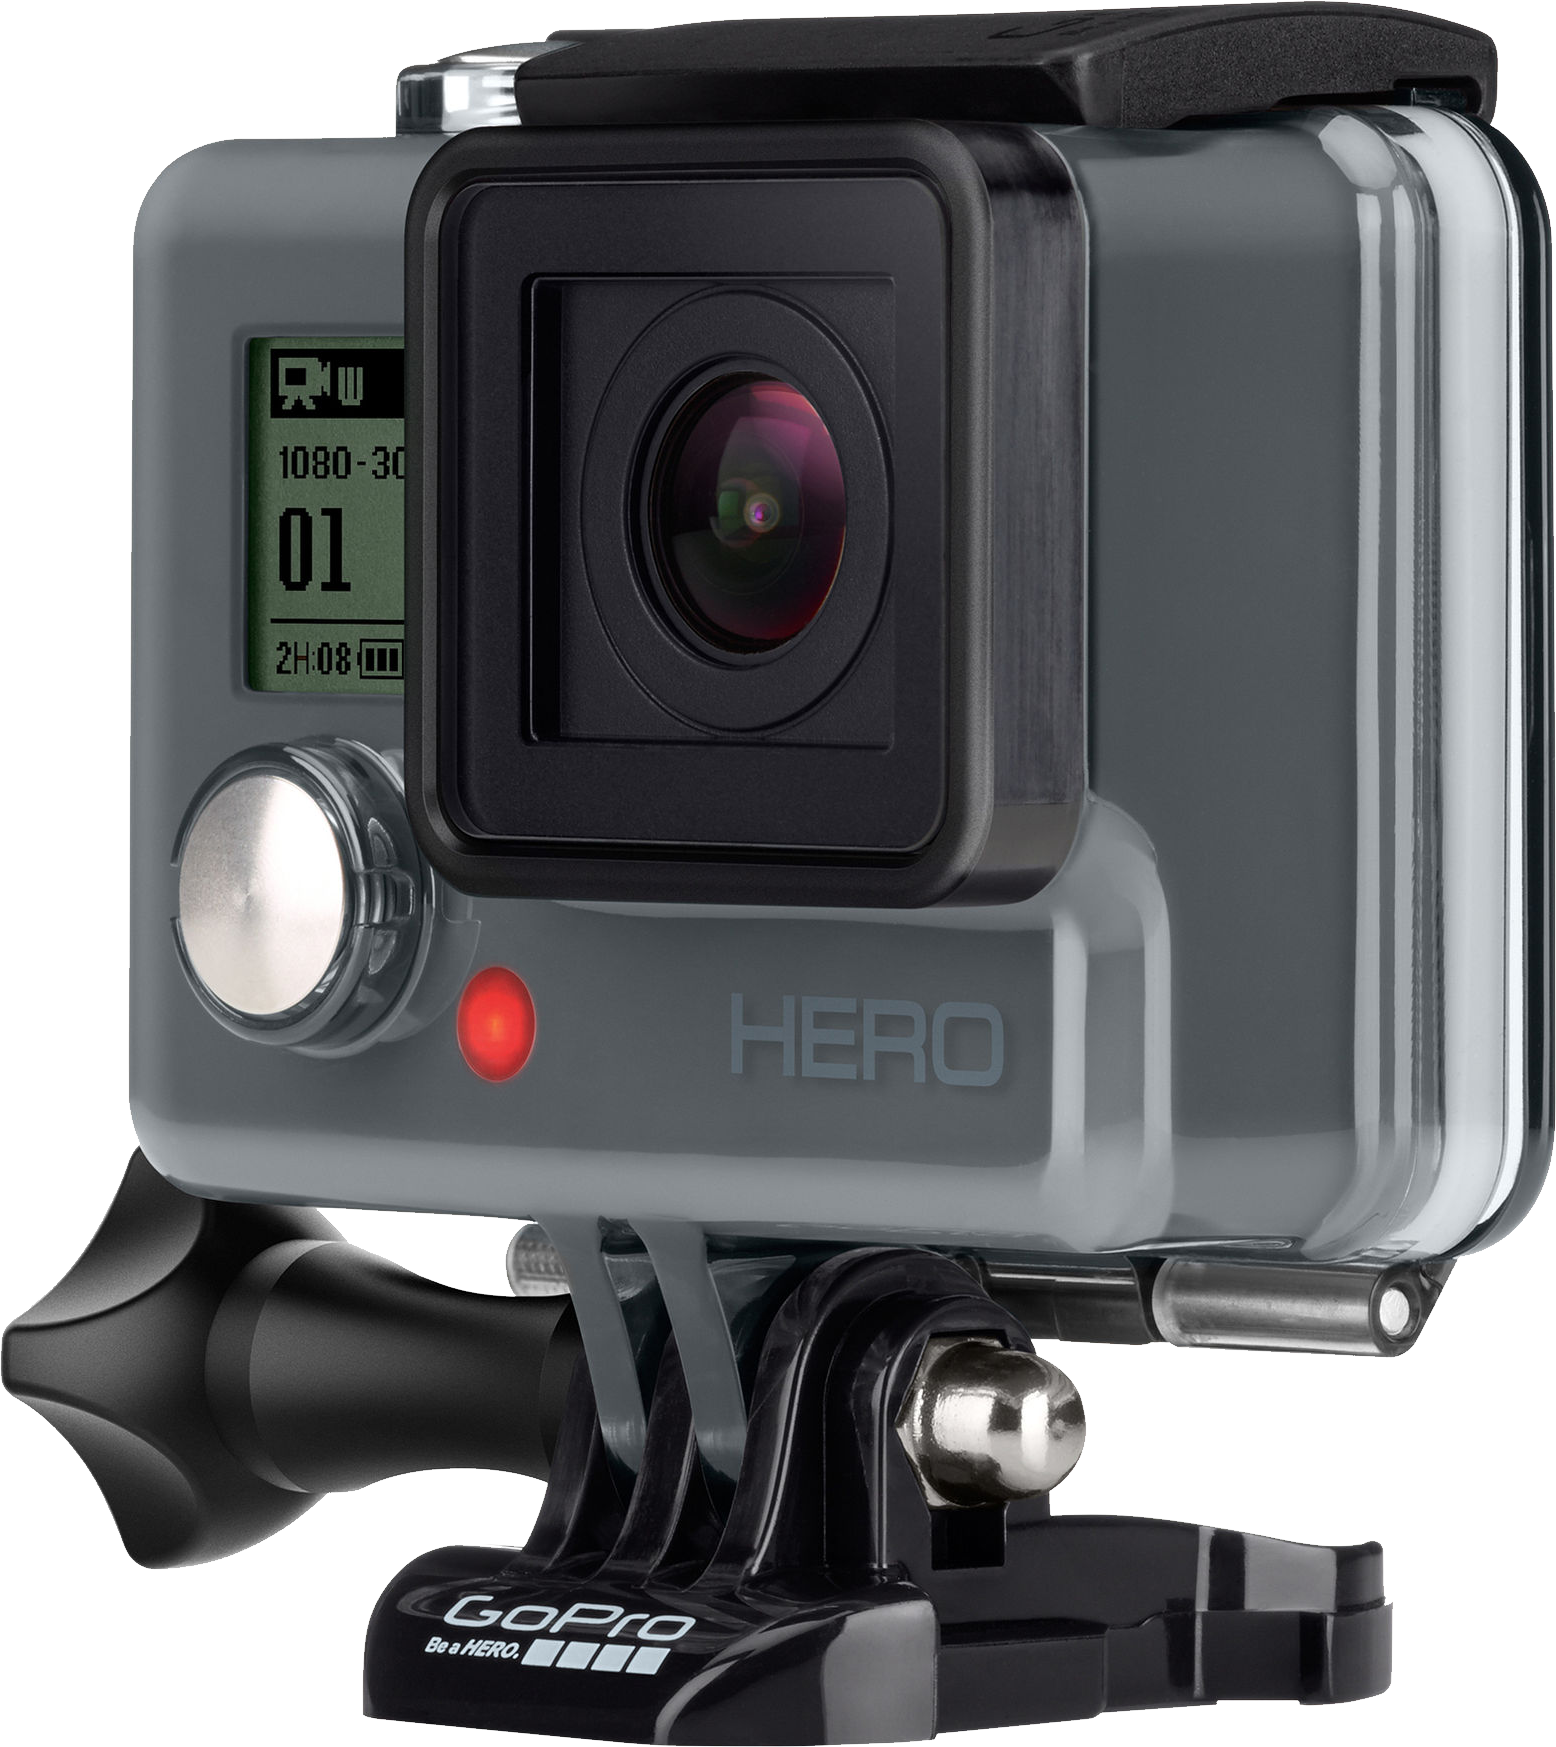 GoPro Hero camera PNG - Gopro PNG